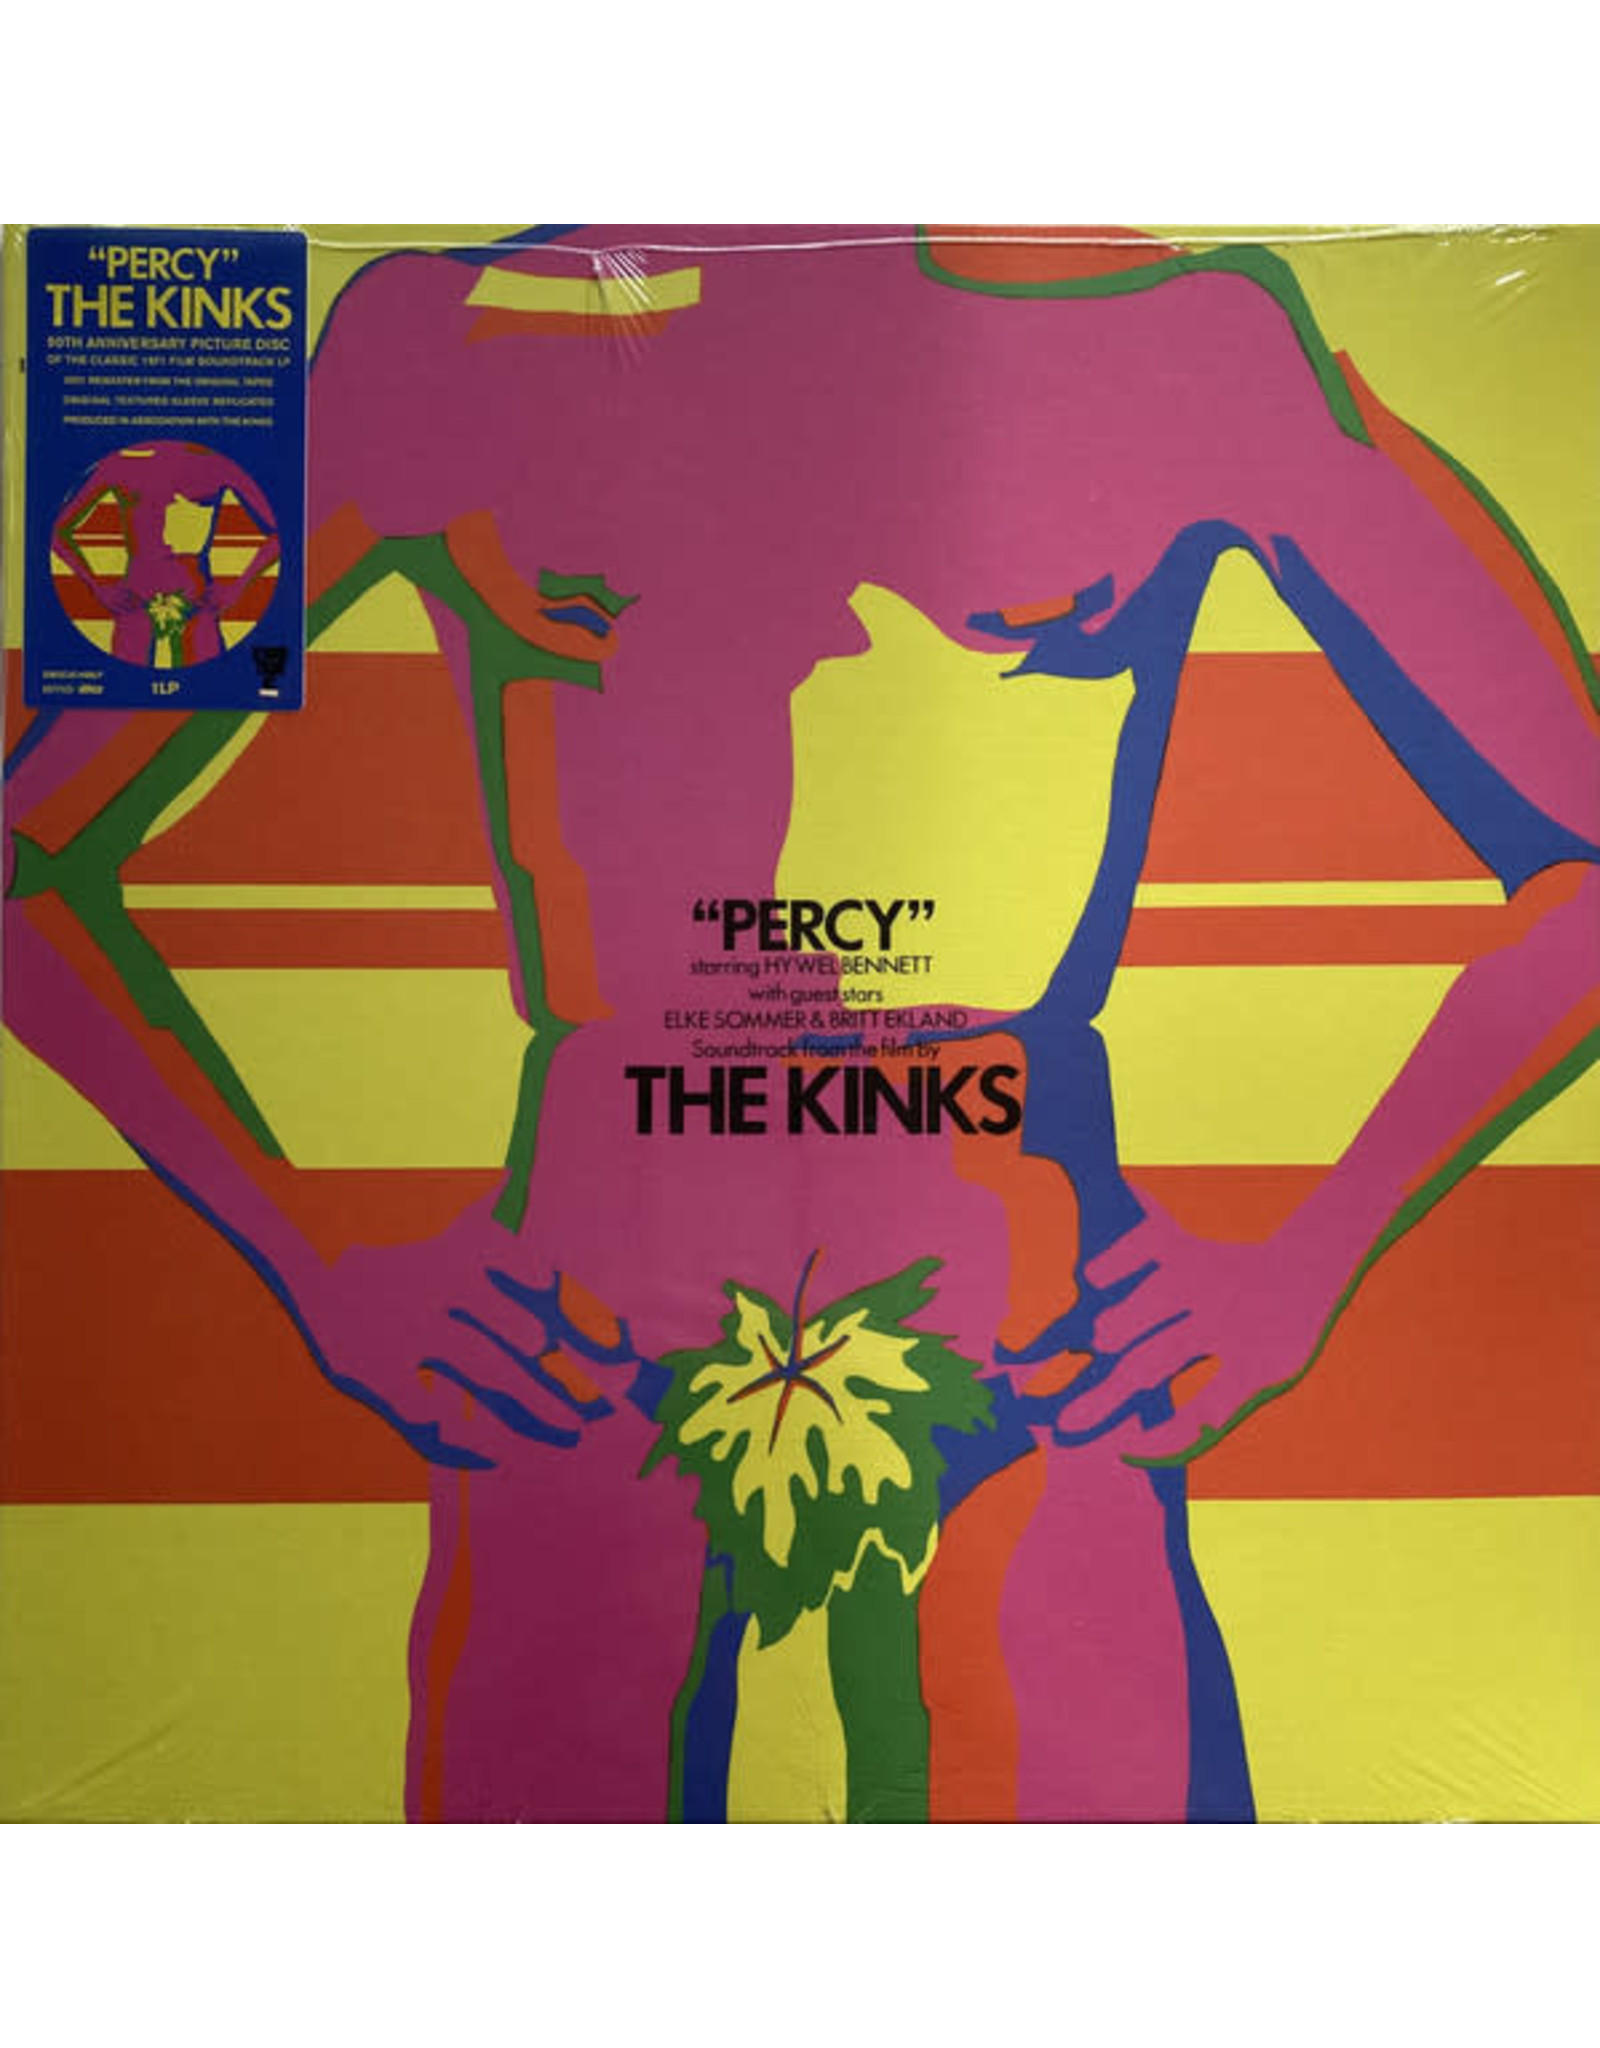 Kinks - Percy OST Picture Disc (RSD '21 Exclusive)